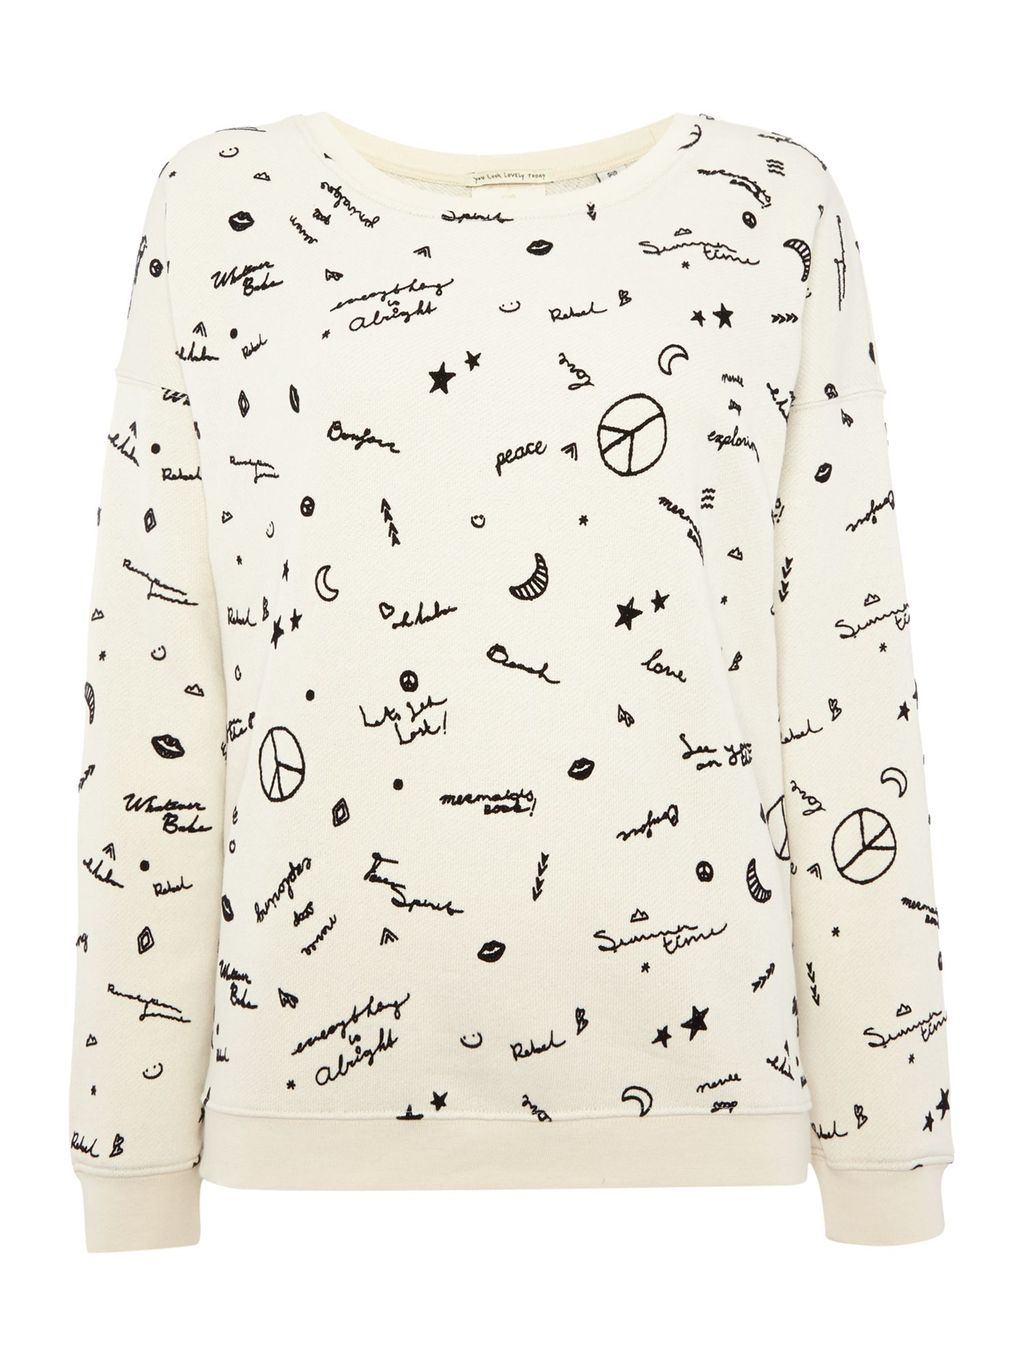 Peace Sweatshirt, Cream - neckline: round neck; style: sweat top; predominant colour: ivory/cream; secondary colour: black; occasions: casual; length: standard; fibres: cotton - mix; fit: body skimming; sleeve length: long sleeve; sleeve style: standard; pattern type: fabric; pattern: patterned/print; texture group: jersey - stretchy/drapey; multicoloured: multicoloured; season: s/s 2016; wardrobe: highlight